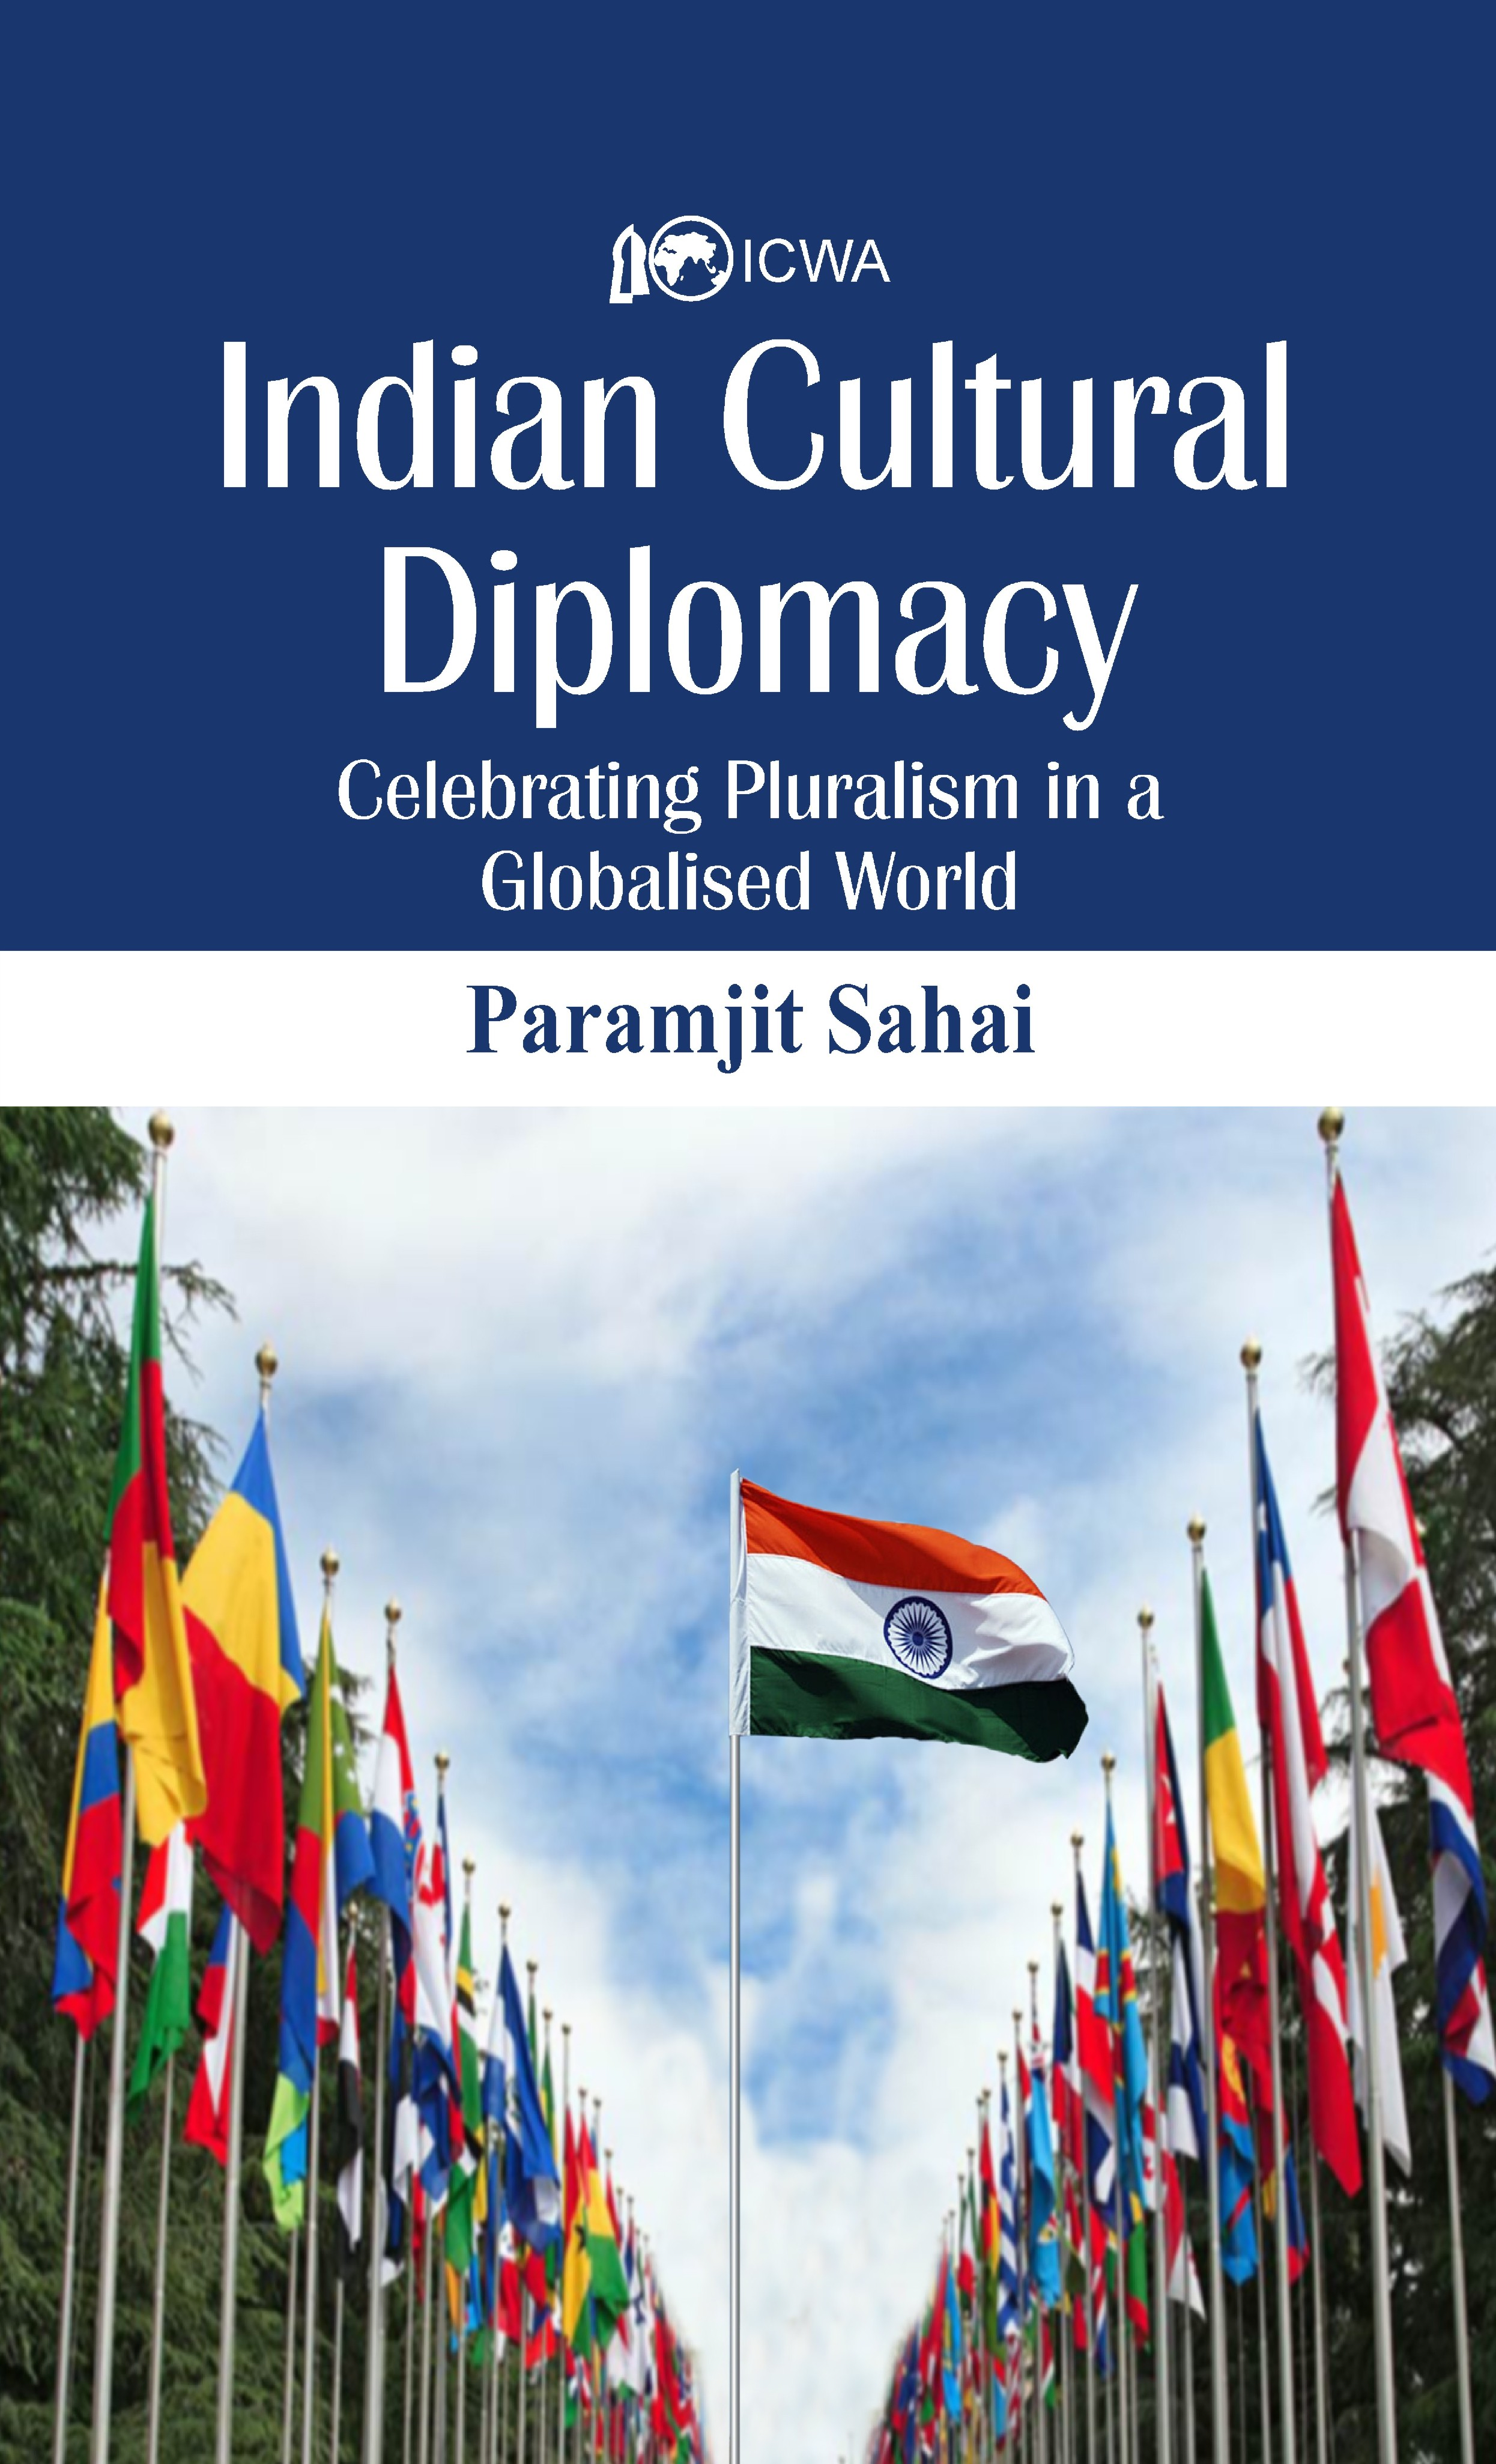 Book Review: Indian Cultural Diplomacy Celebrating Pluralism in a Globalised World